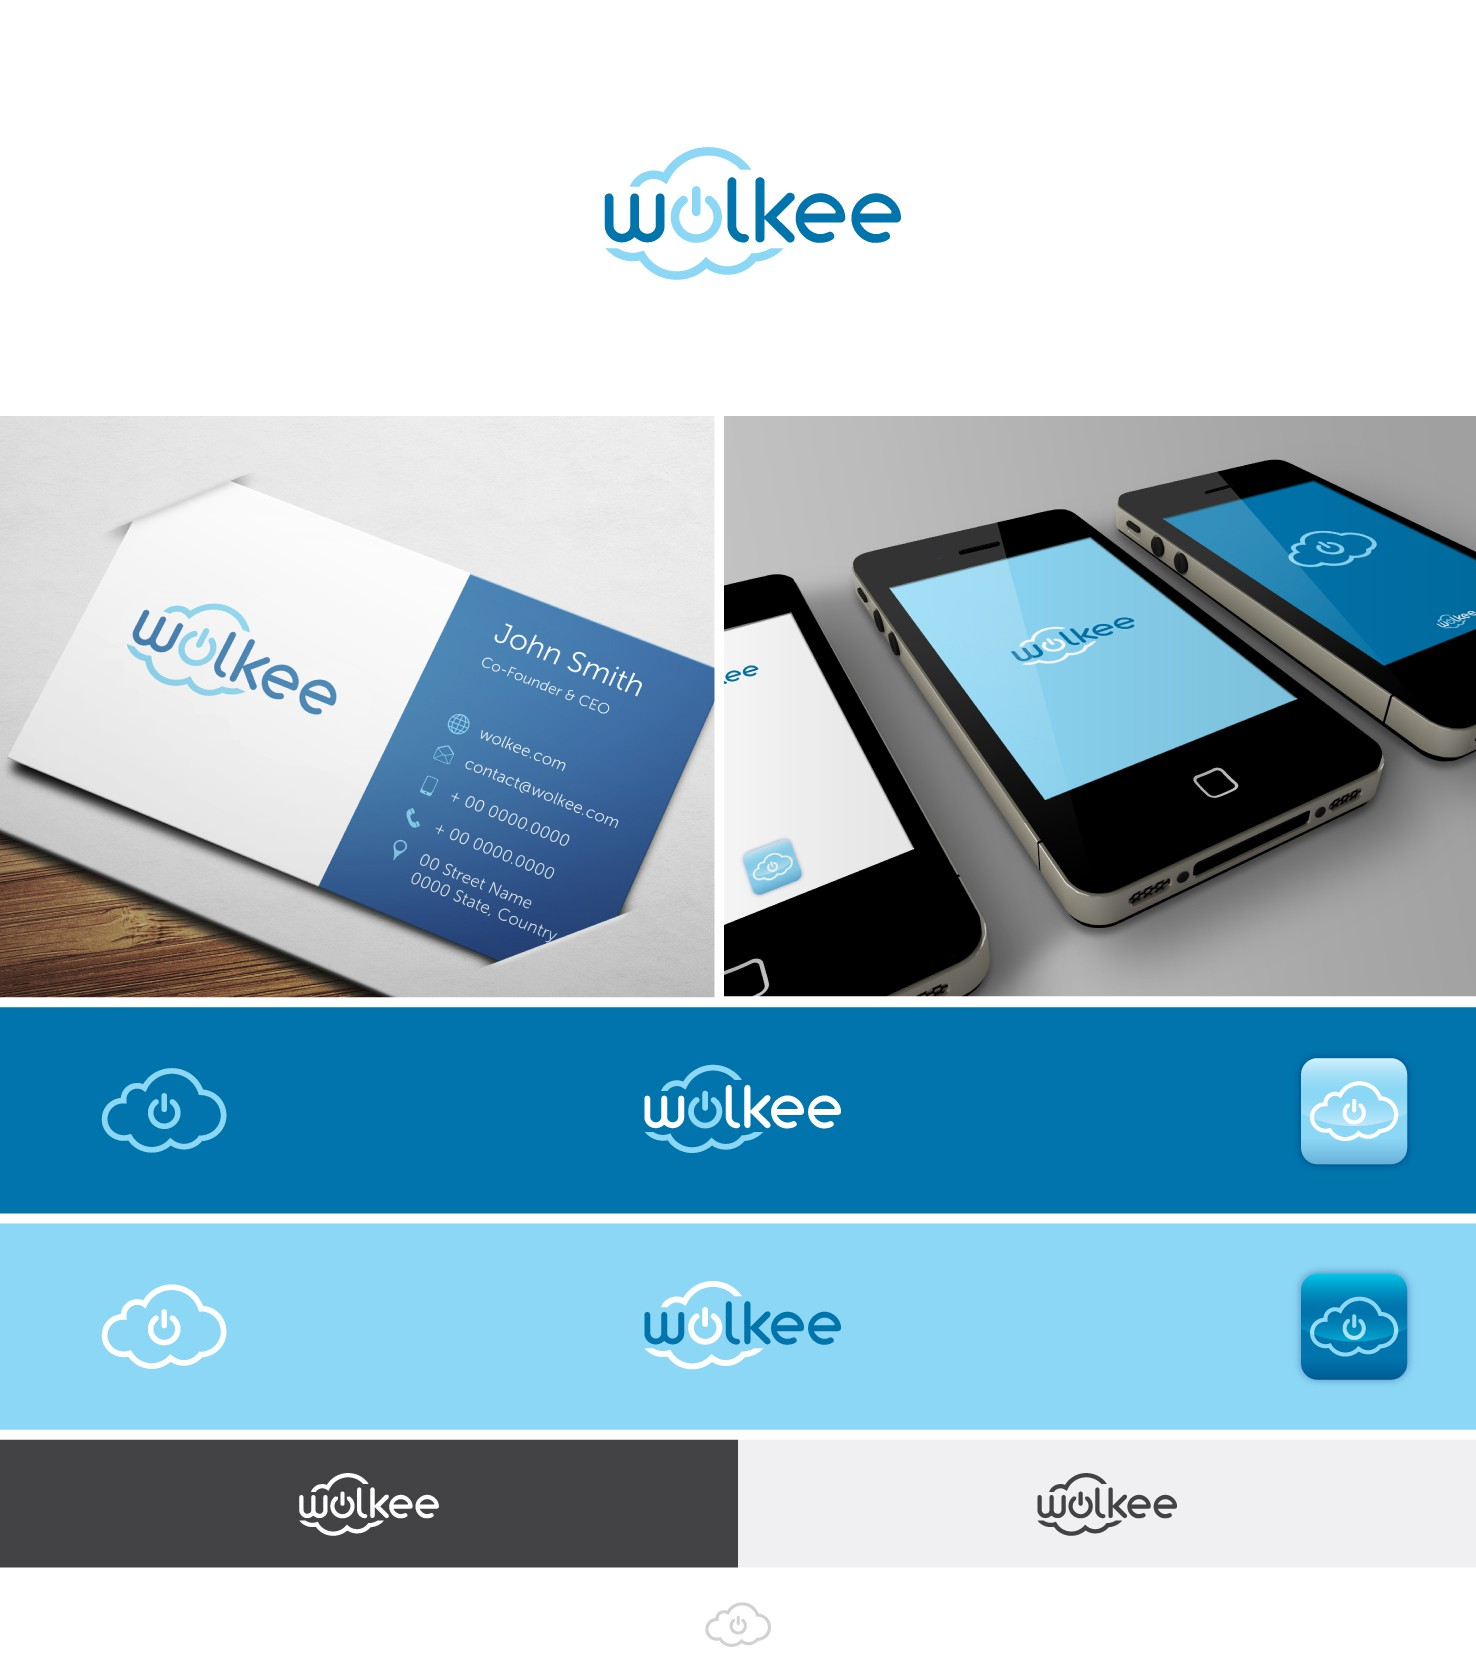 Help wolkee with a new logo and business card